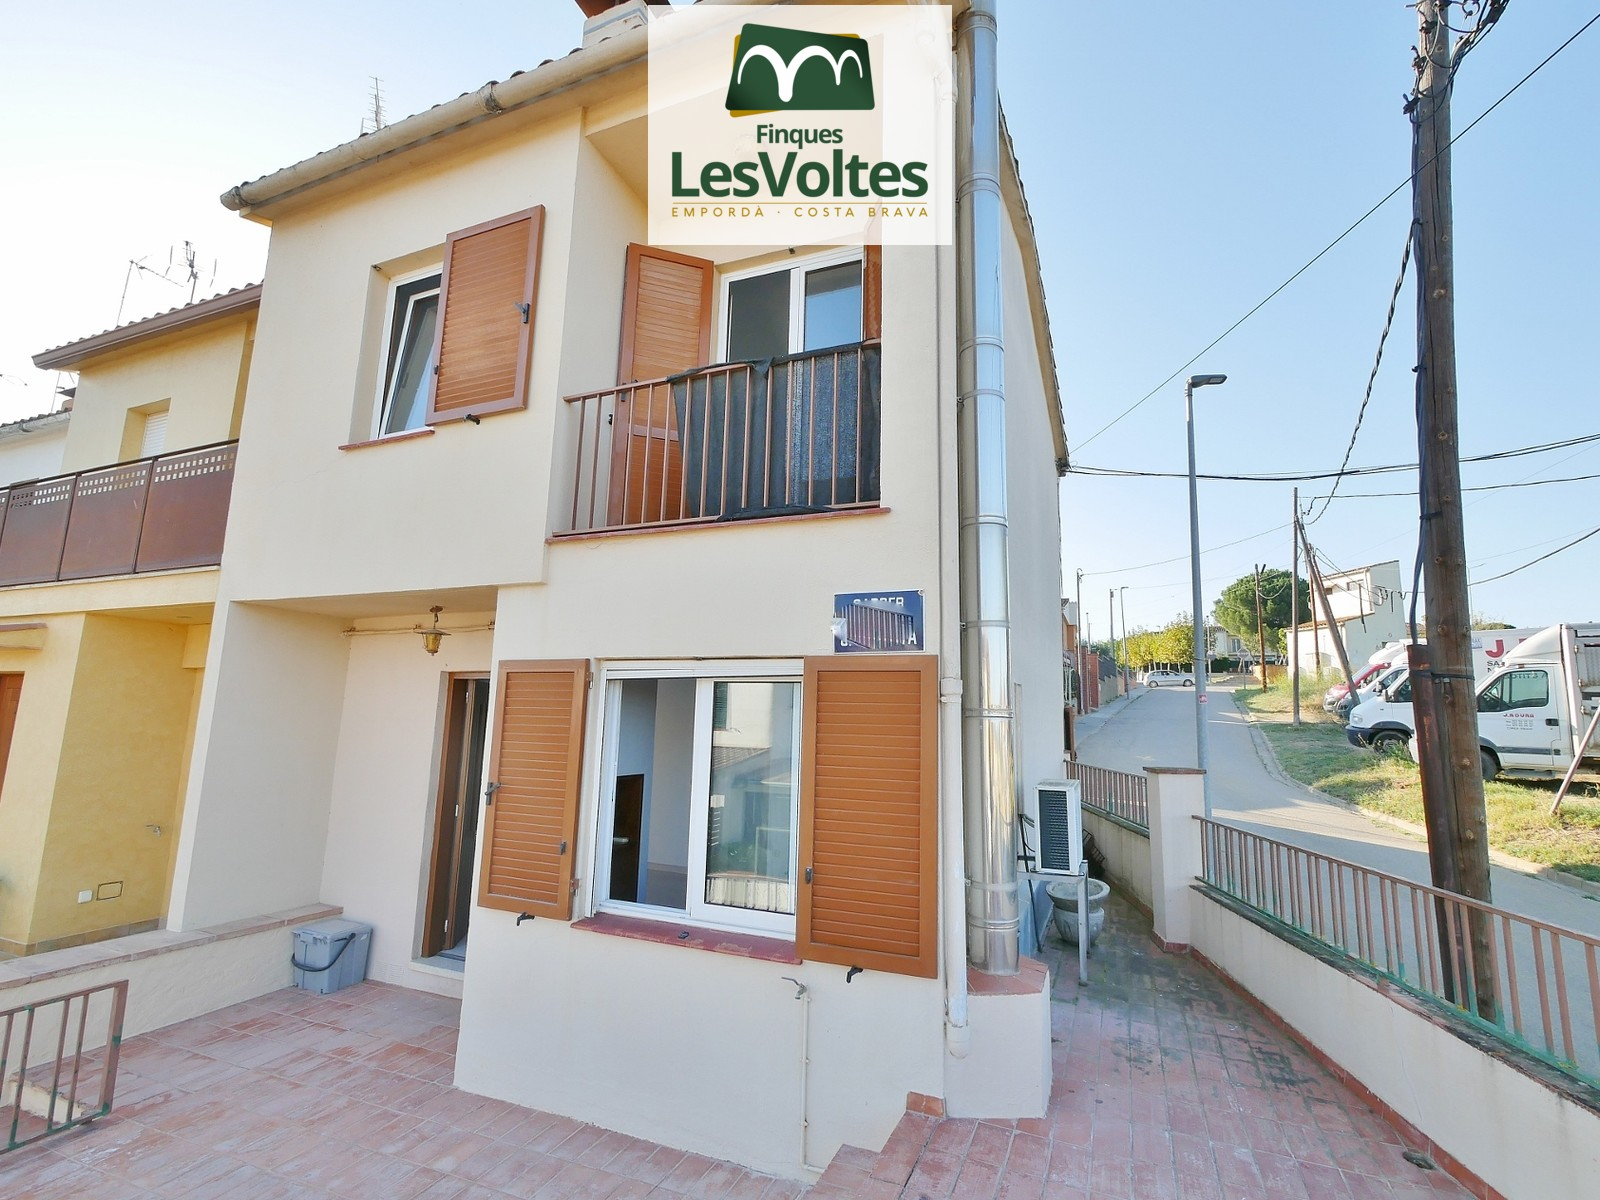 91 M2 CORNER HOUSE WITH SMALL YARD AND TERRACE FOR SALE IN CORÇÀ.